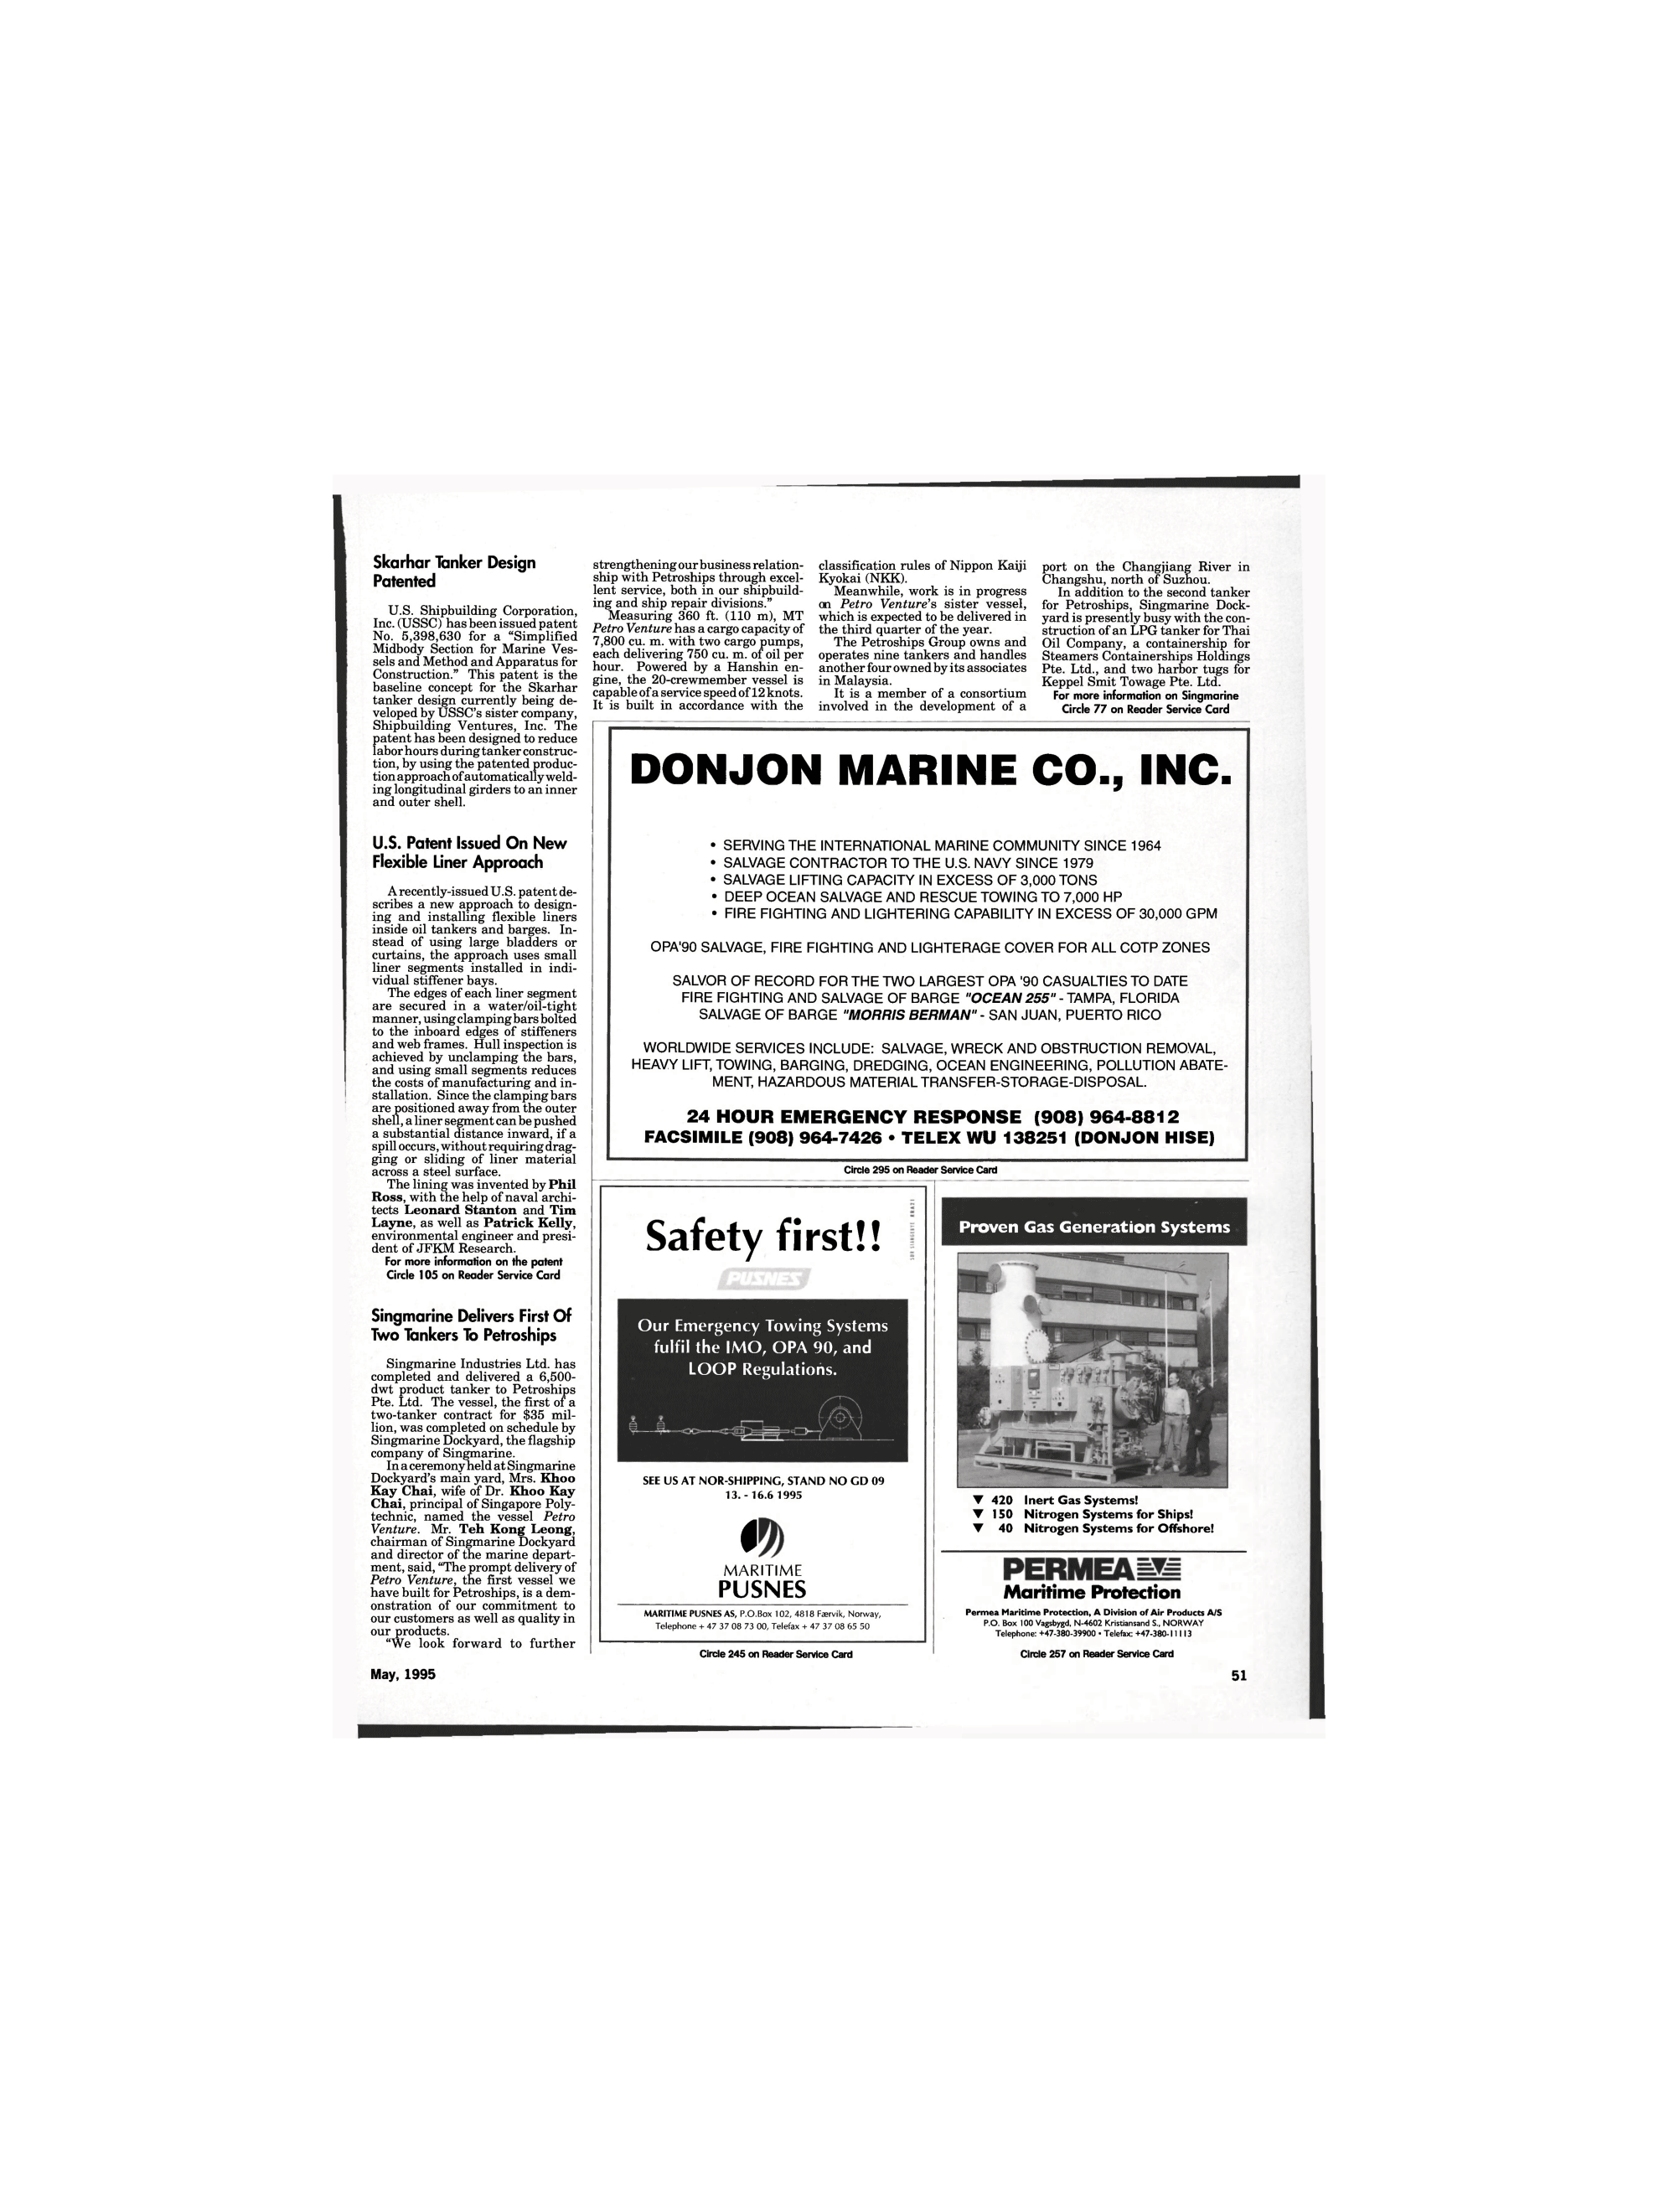 ViewMaritime Reporter and Engineering News (May 1995)